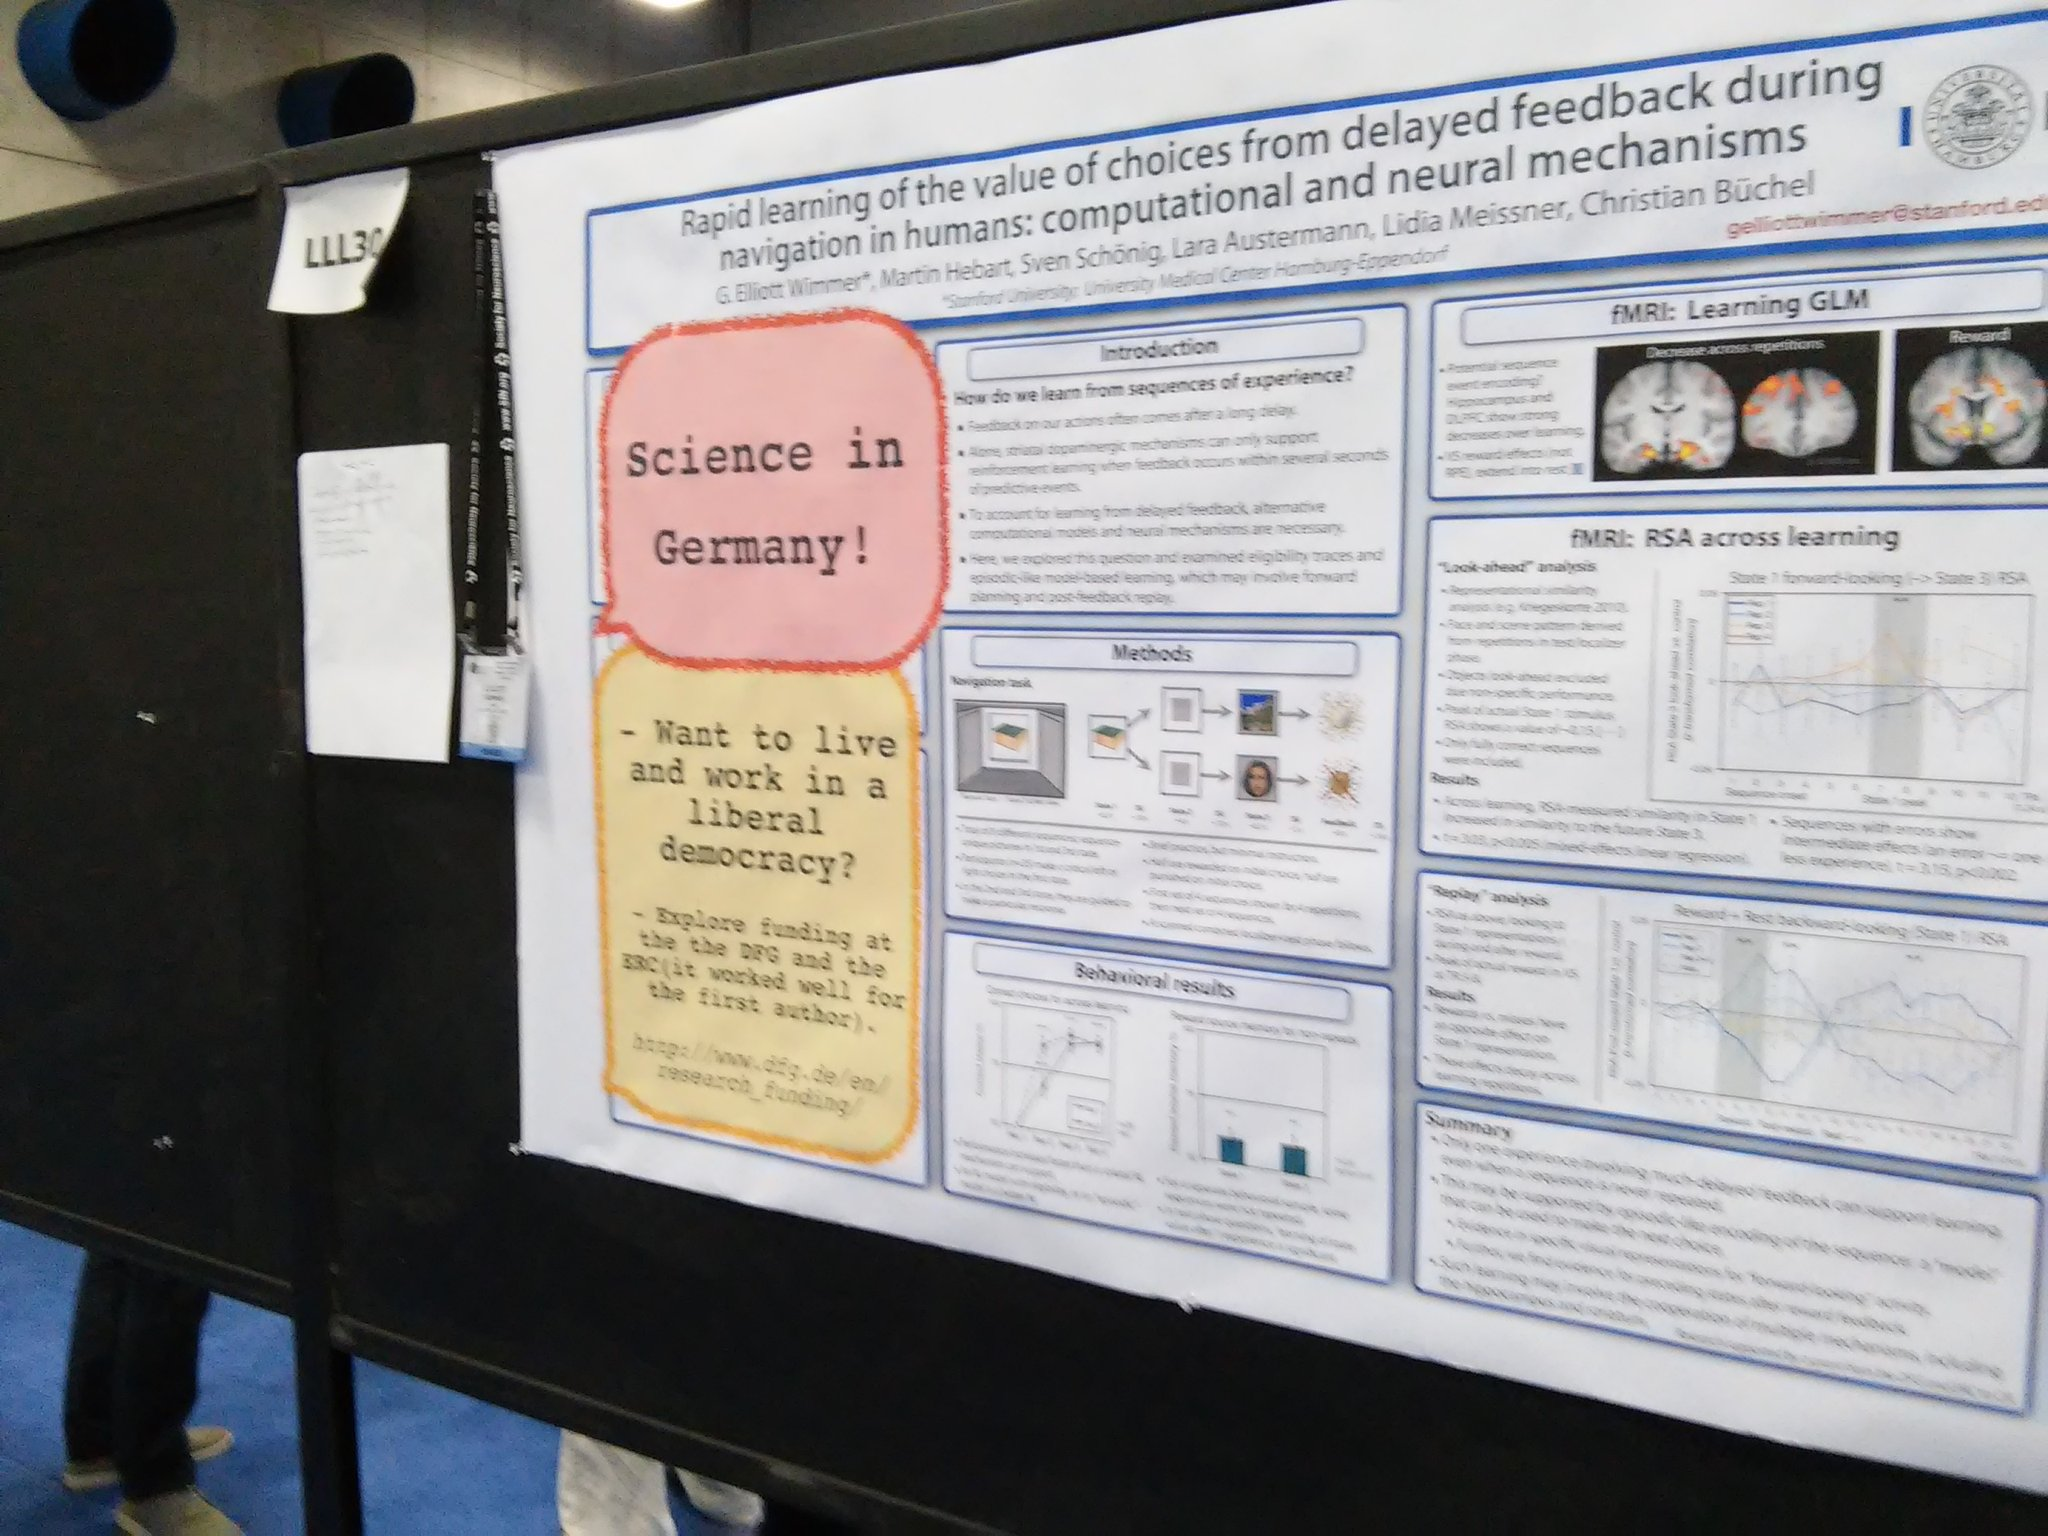 "Postet LLL30 Eliott Wimmer: ""look-ahead"" fMRI activity during delay in reward learning task #sfn16 #plos https://t.co/fTOc3lAOBg"